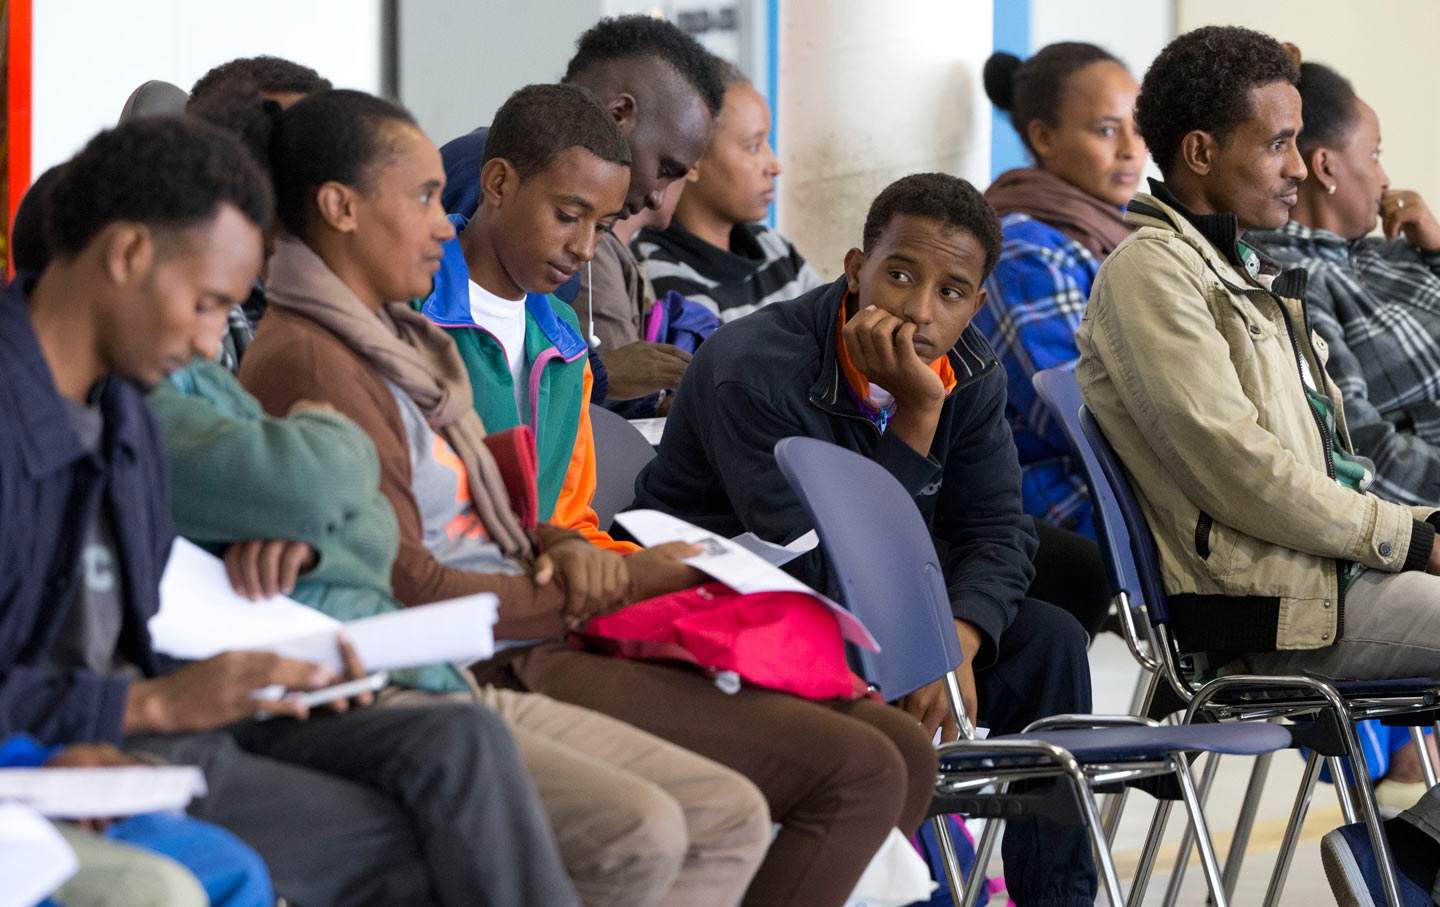 Europe Is Trying To Rid Itself Of The Eritrean Refugee Crisis on Latest How Do You Write A Check